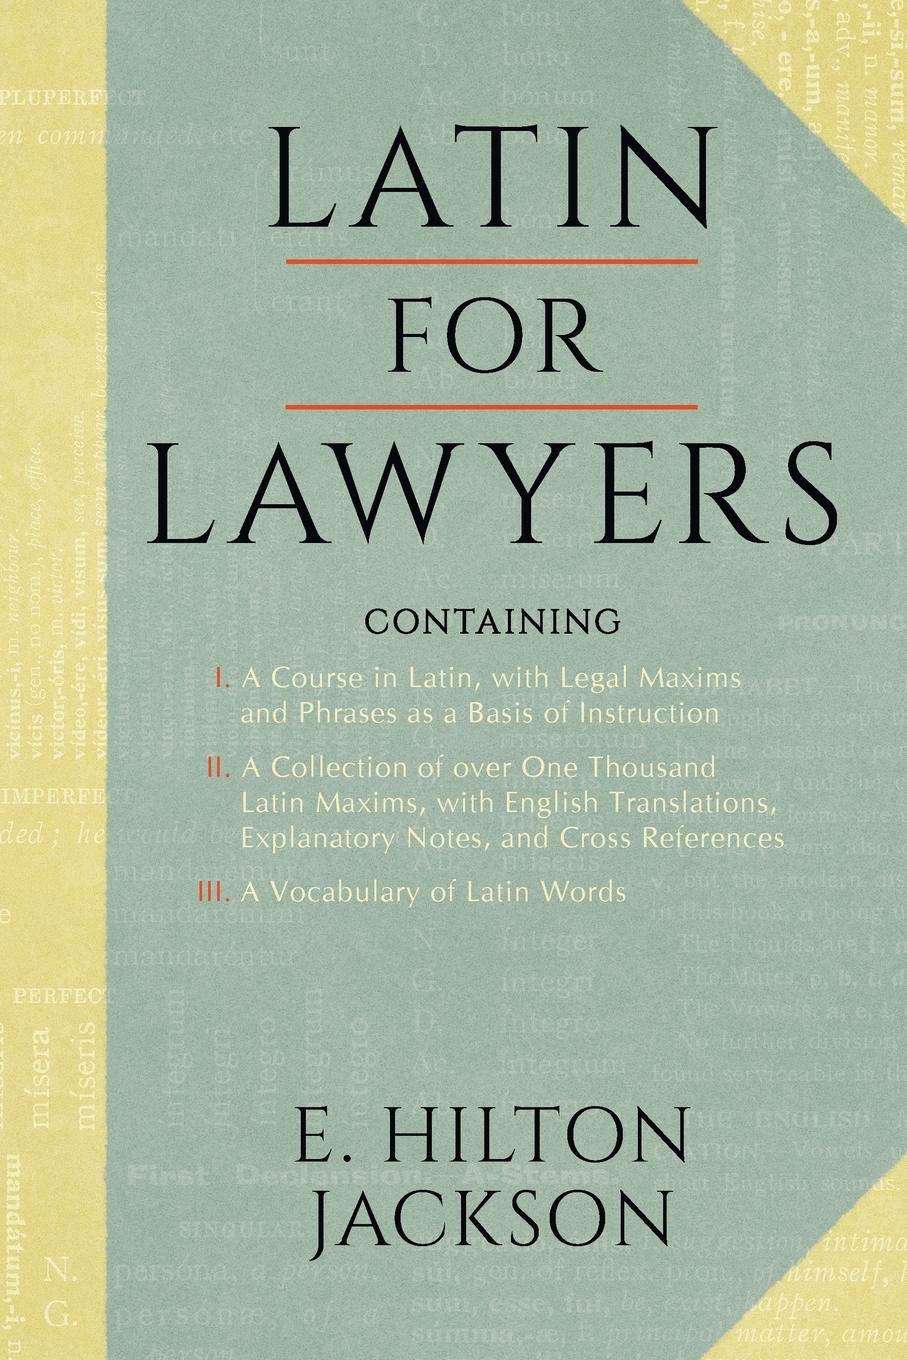 Latin for Lawyers. Containing: I: A Course in Latin, with Legal Maxims &  Phrases as a Basis of Instruction II. a Collection of Over 1000 Latin  Maxims: ...